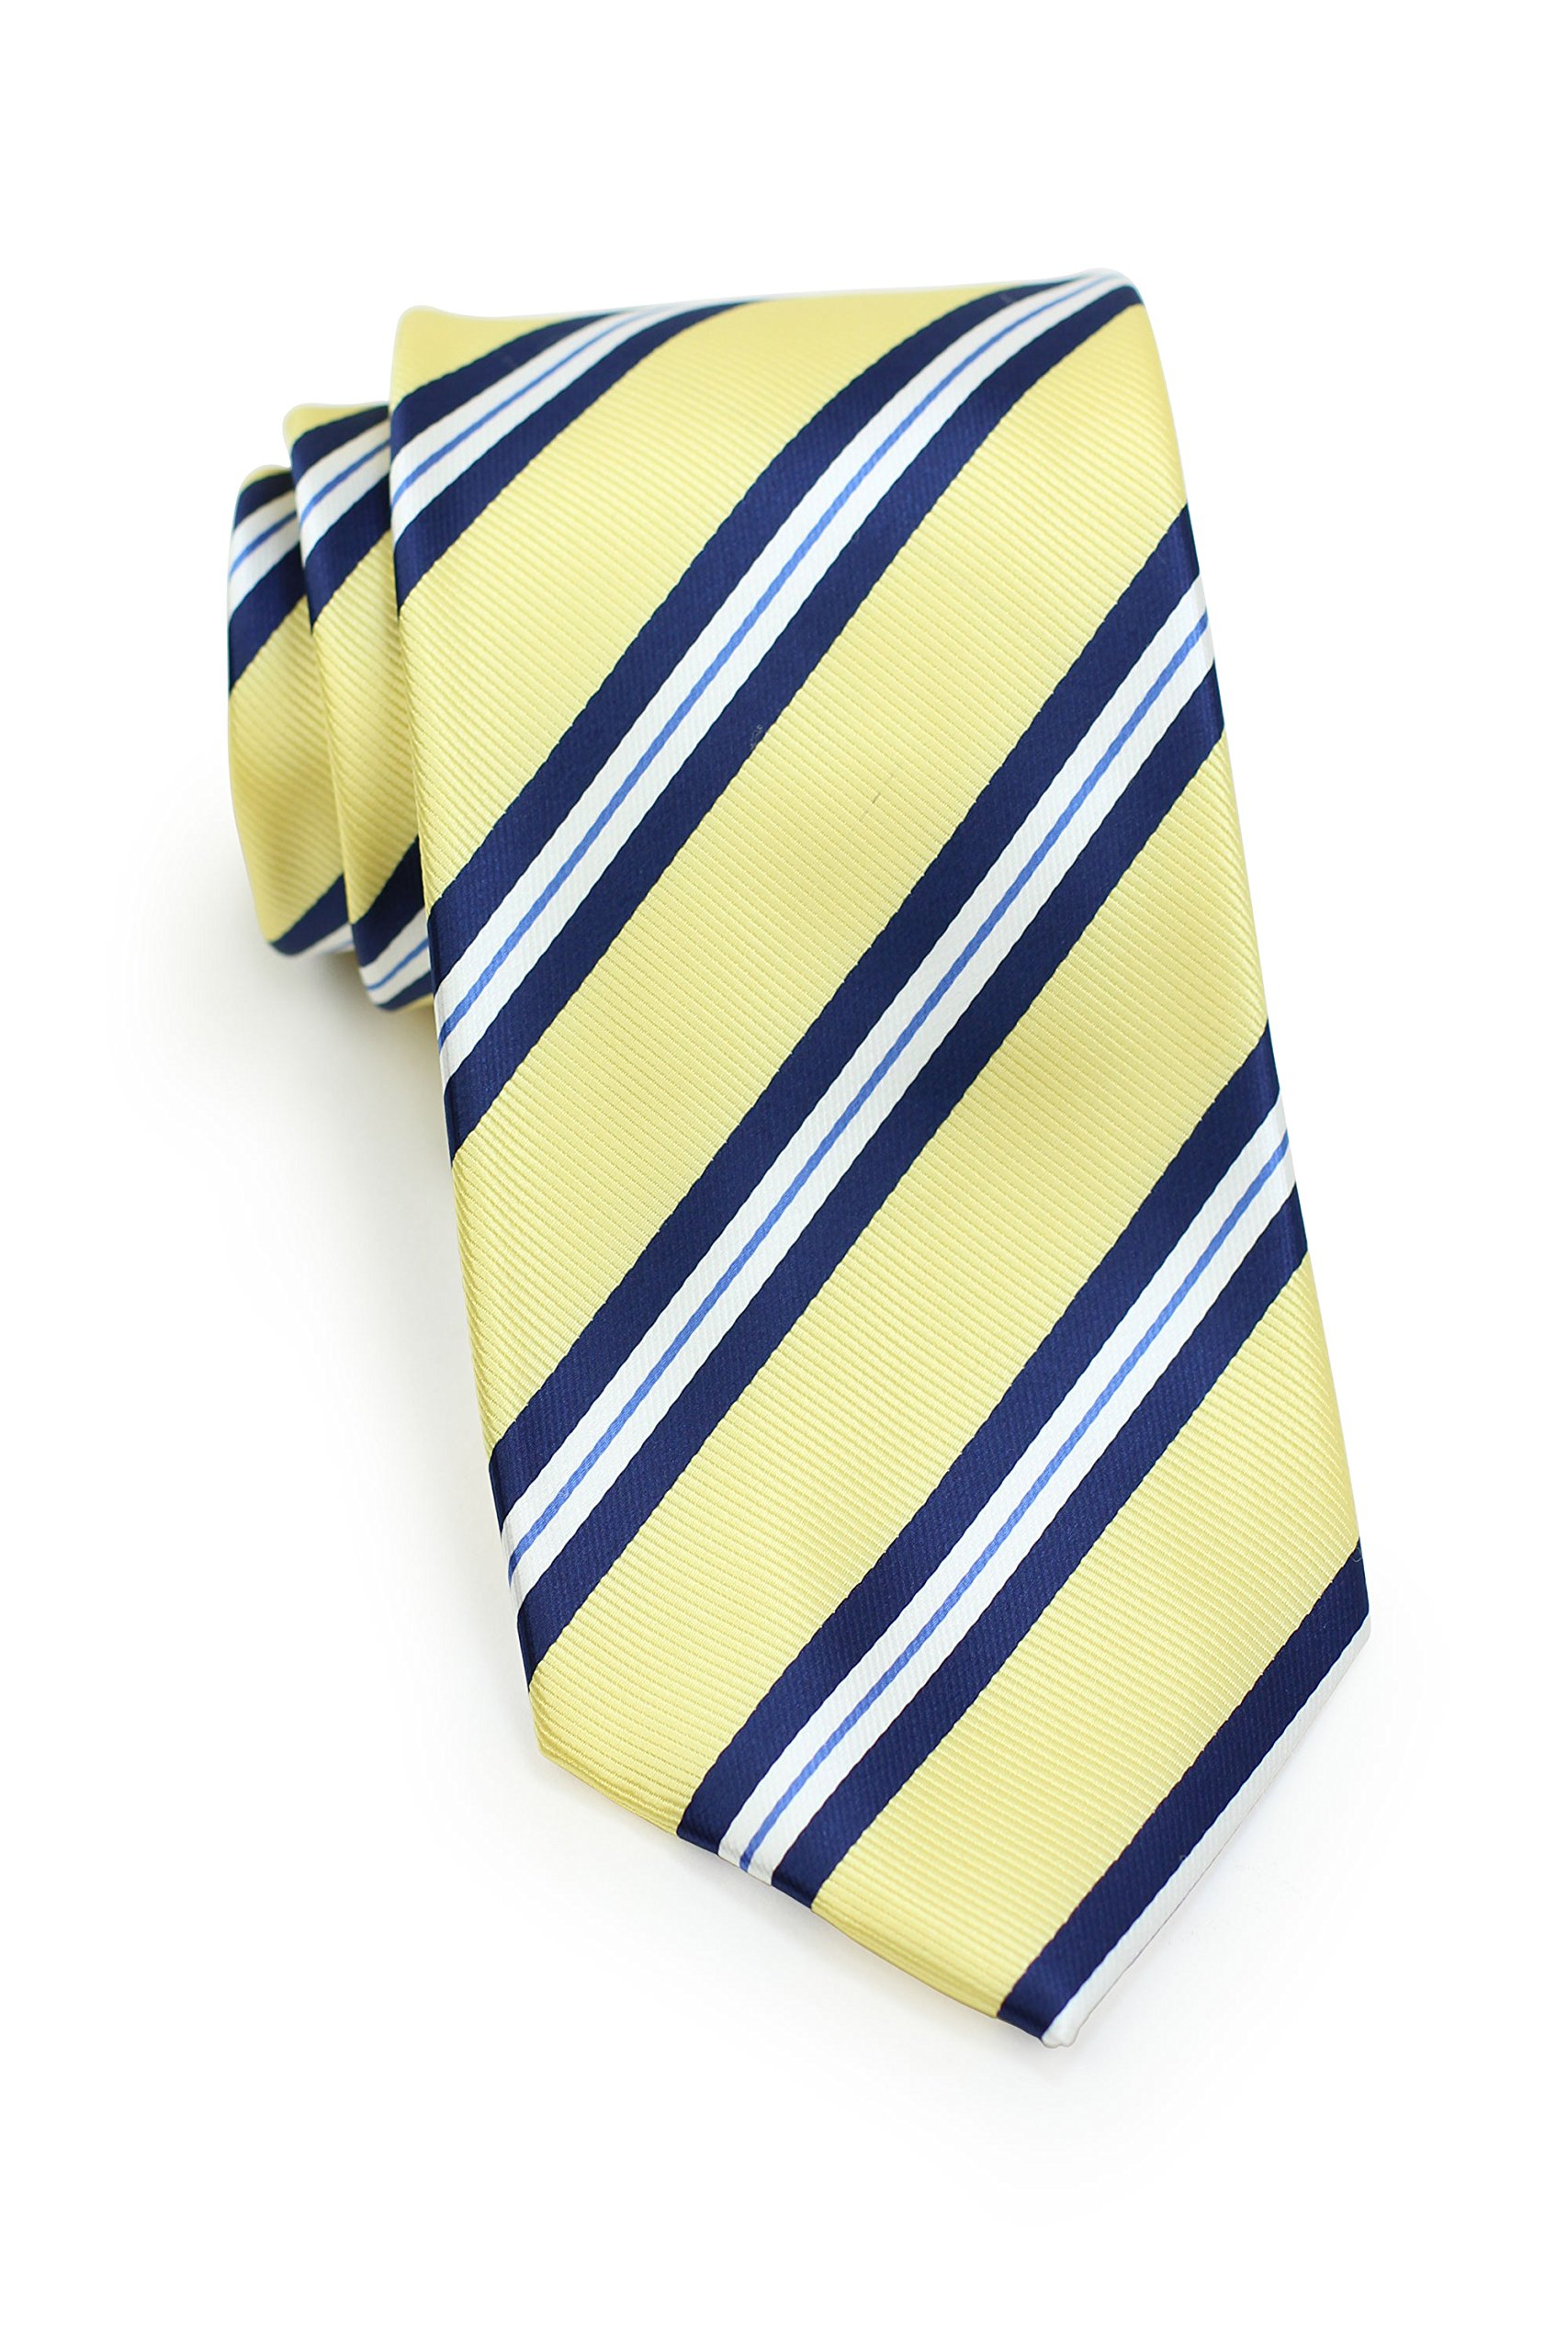 Bows-N-Ties Men's Necktie Preppy Repp Striped Microfiber Satin Tie 3.1 Inches (Pastel Yellow and Navy)